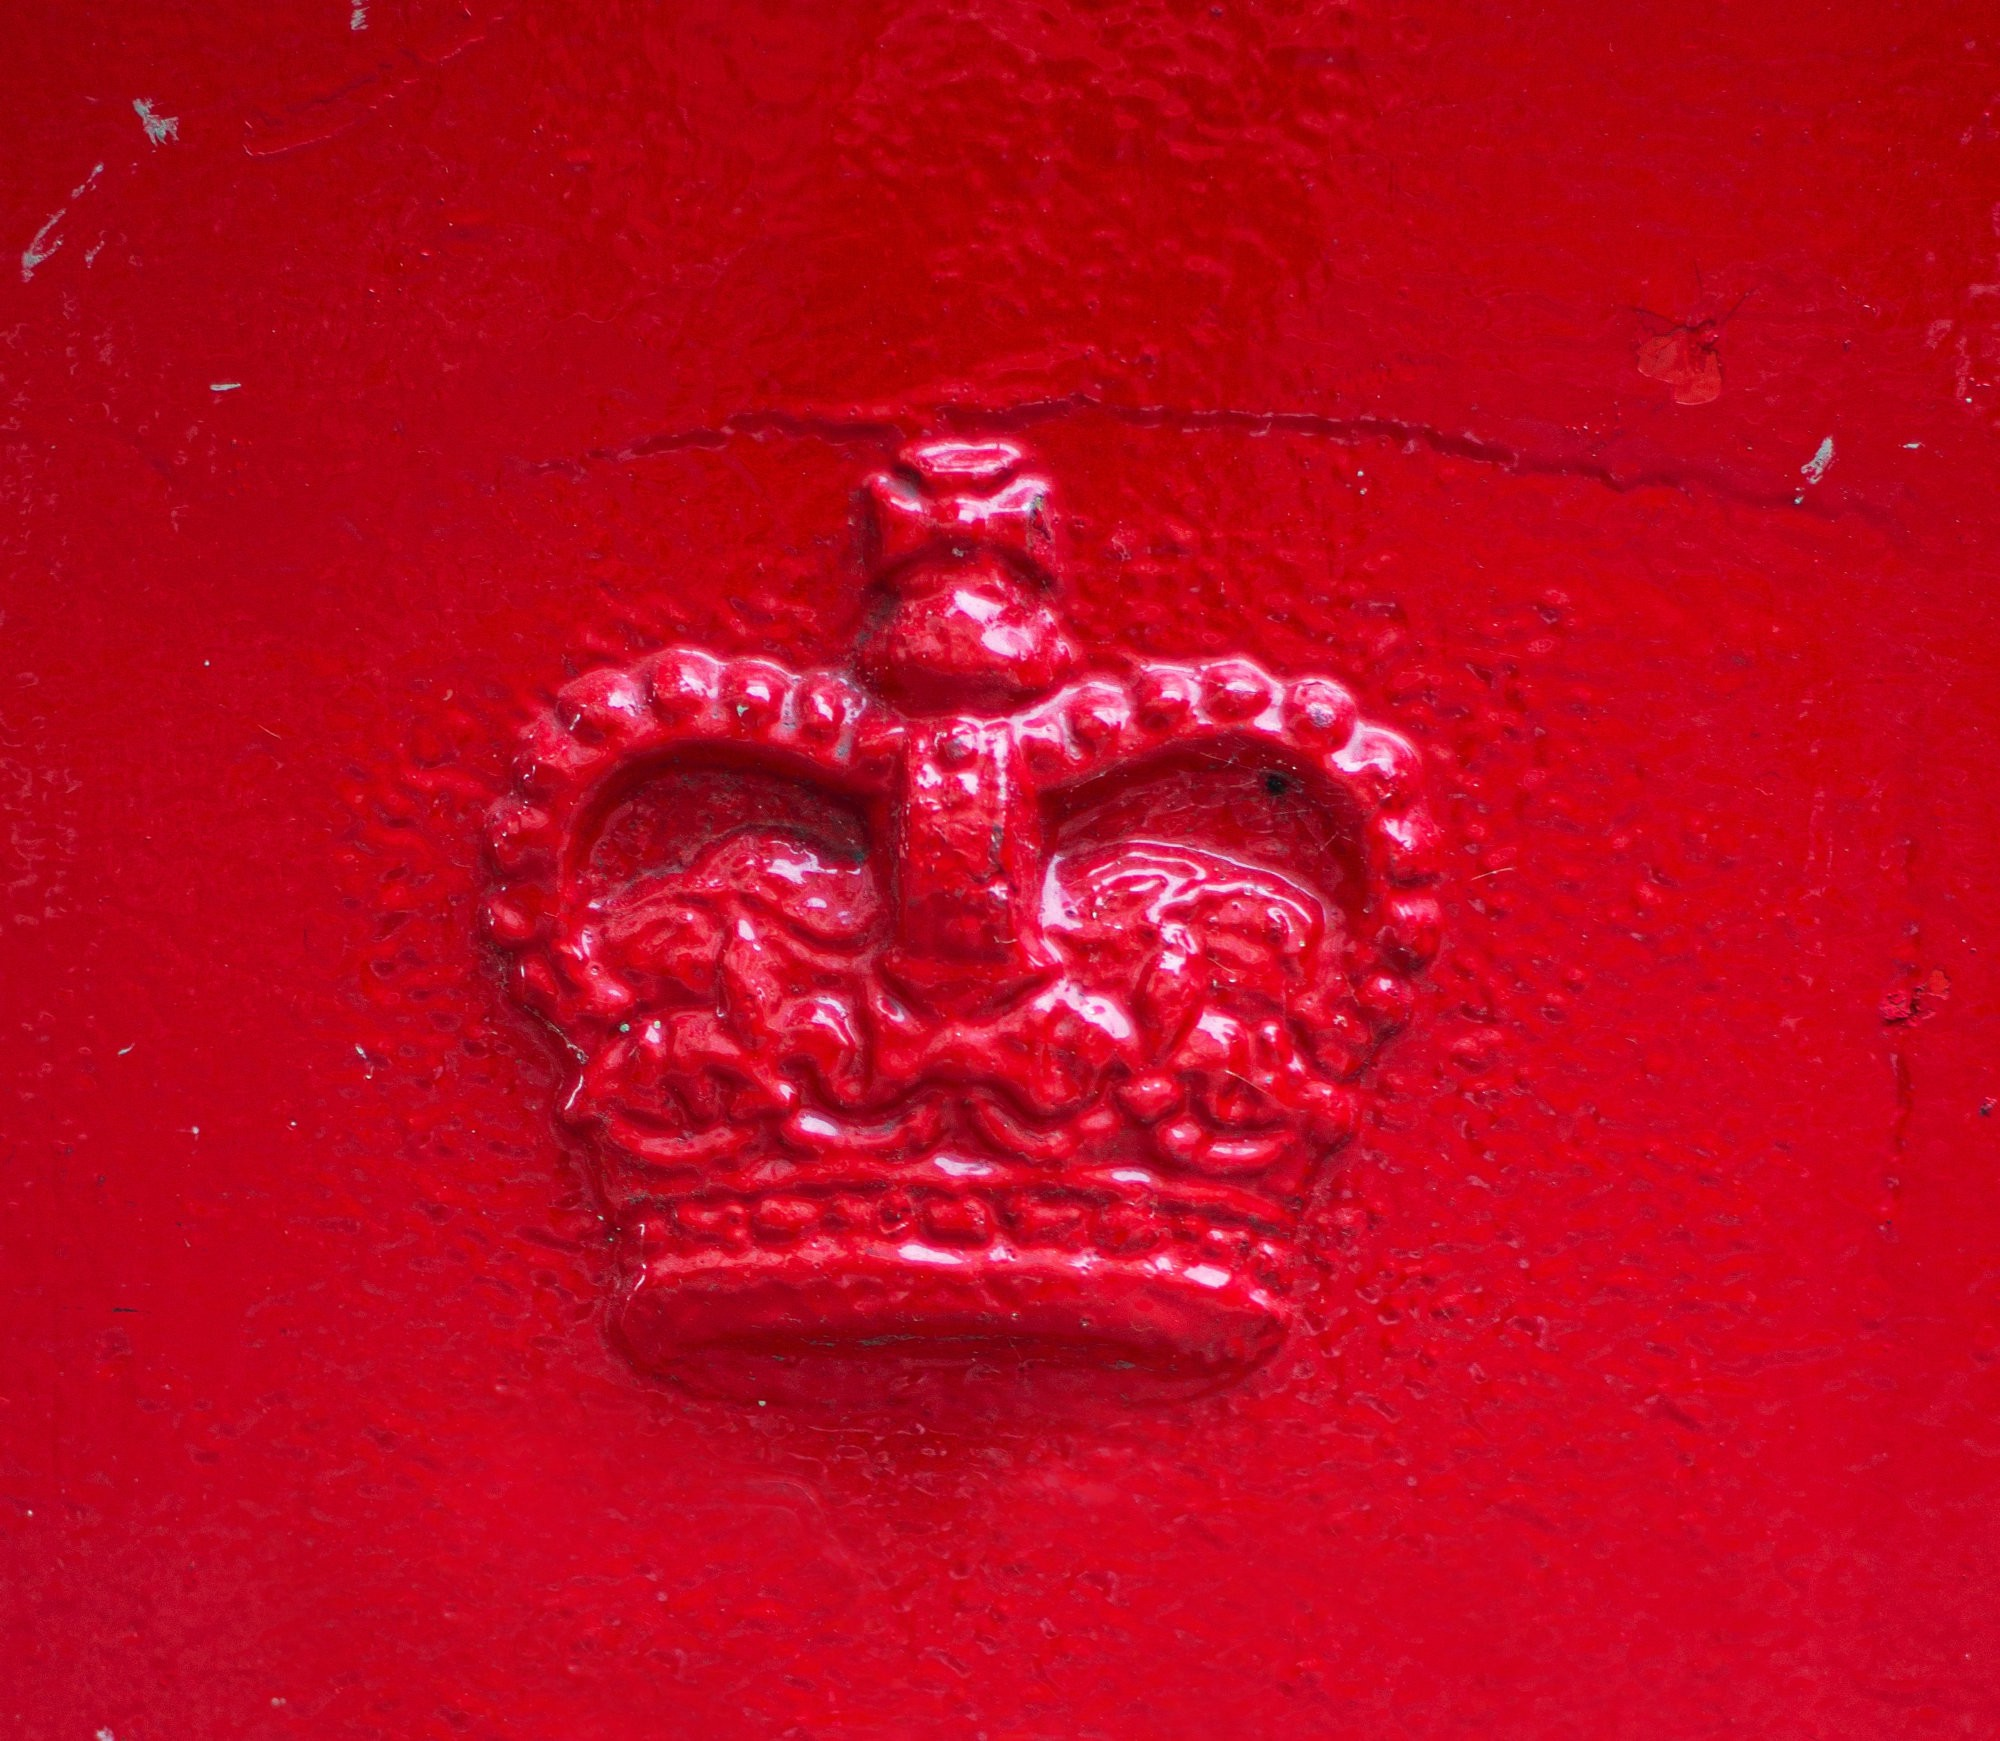 HRM crown symbol cast in iron and painted red.